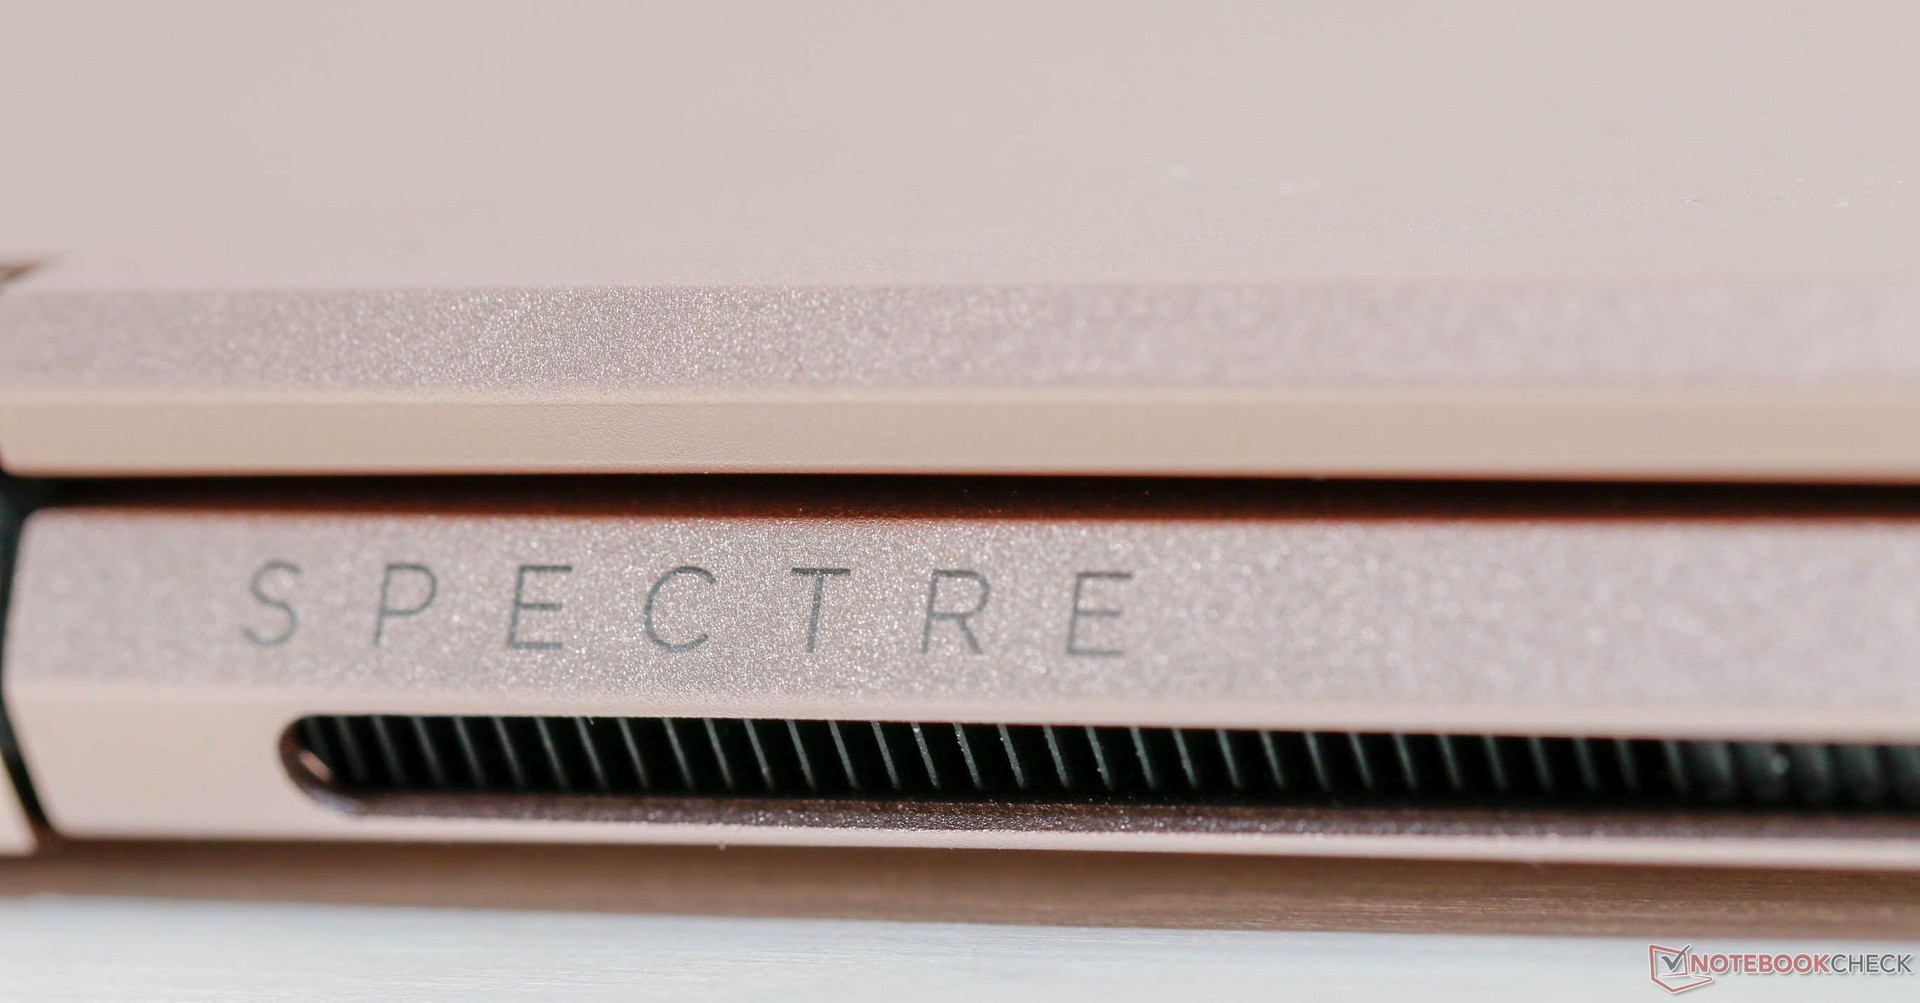 Hp Spectre X360 13t I7 8550u Fhd Ssd Laptop Review 13 Ae519tu The Surface Is Almost Immune To Fingerprints